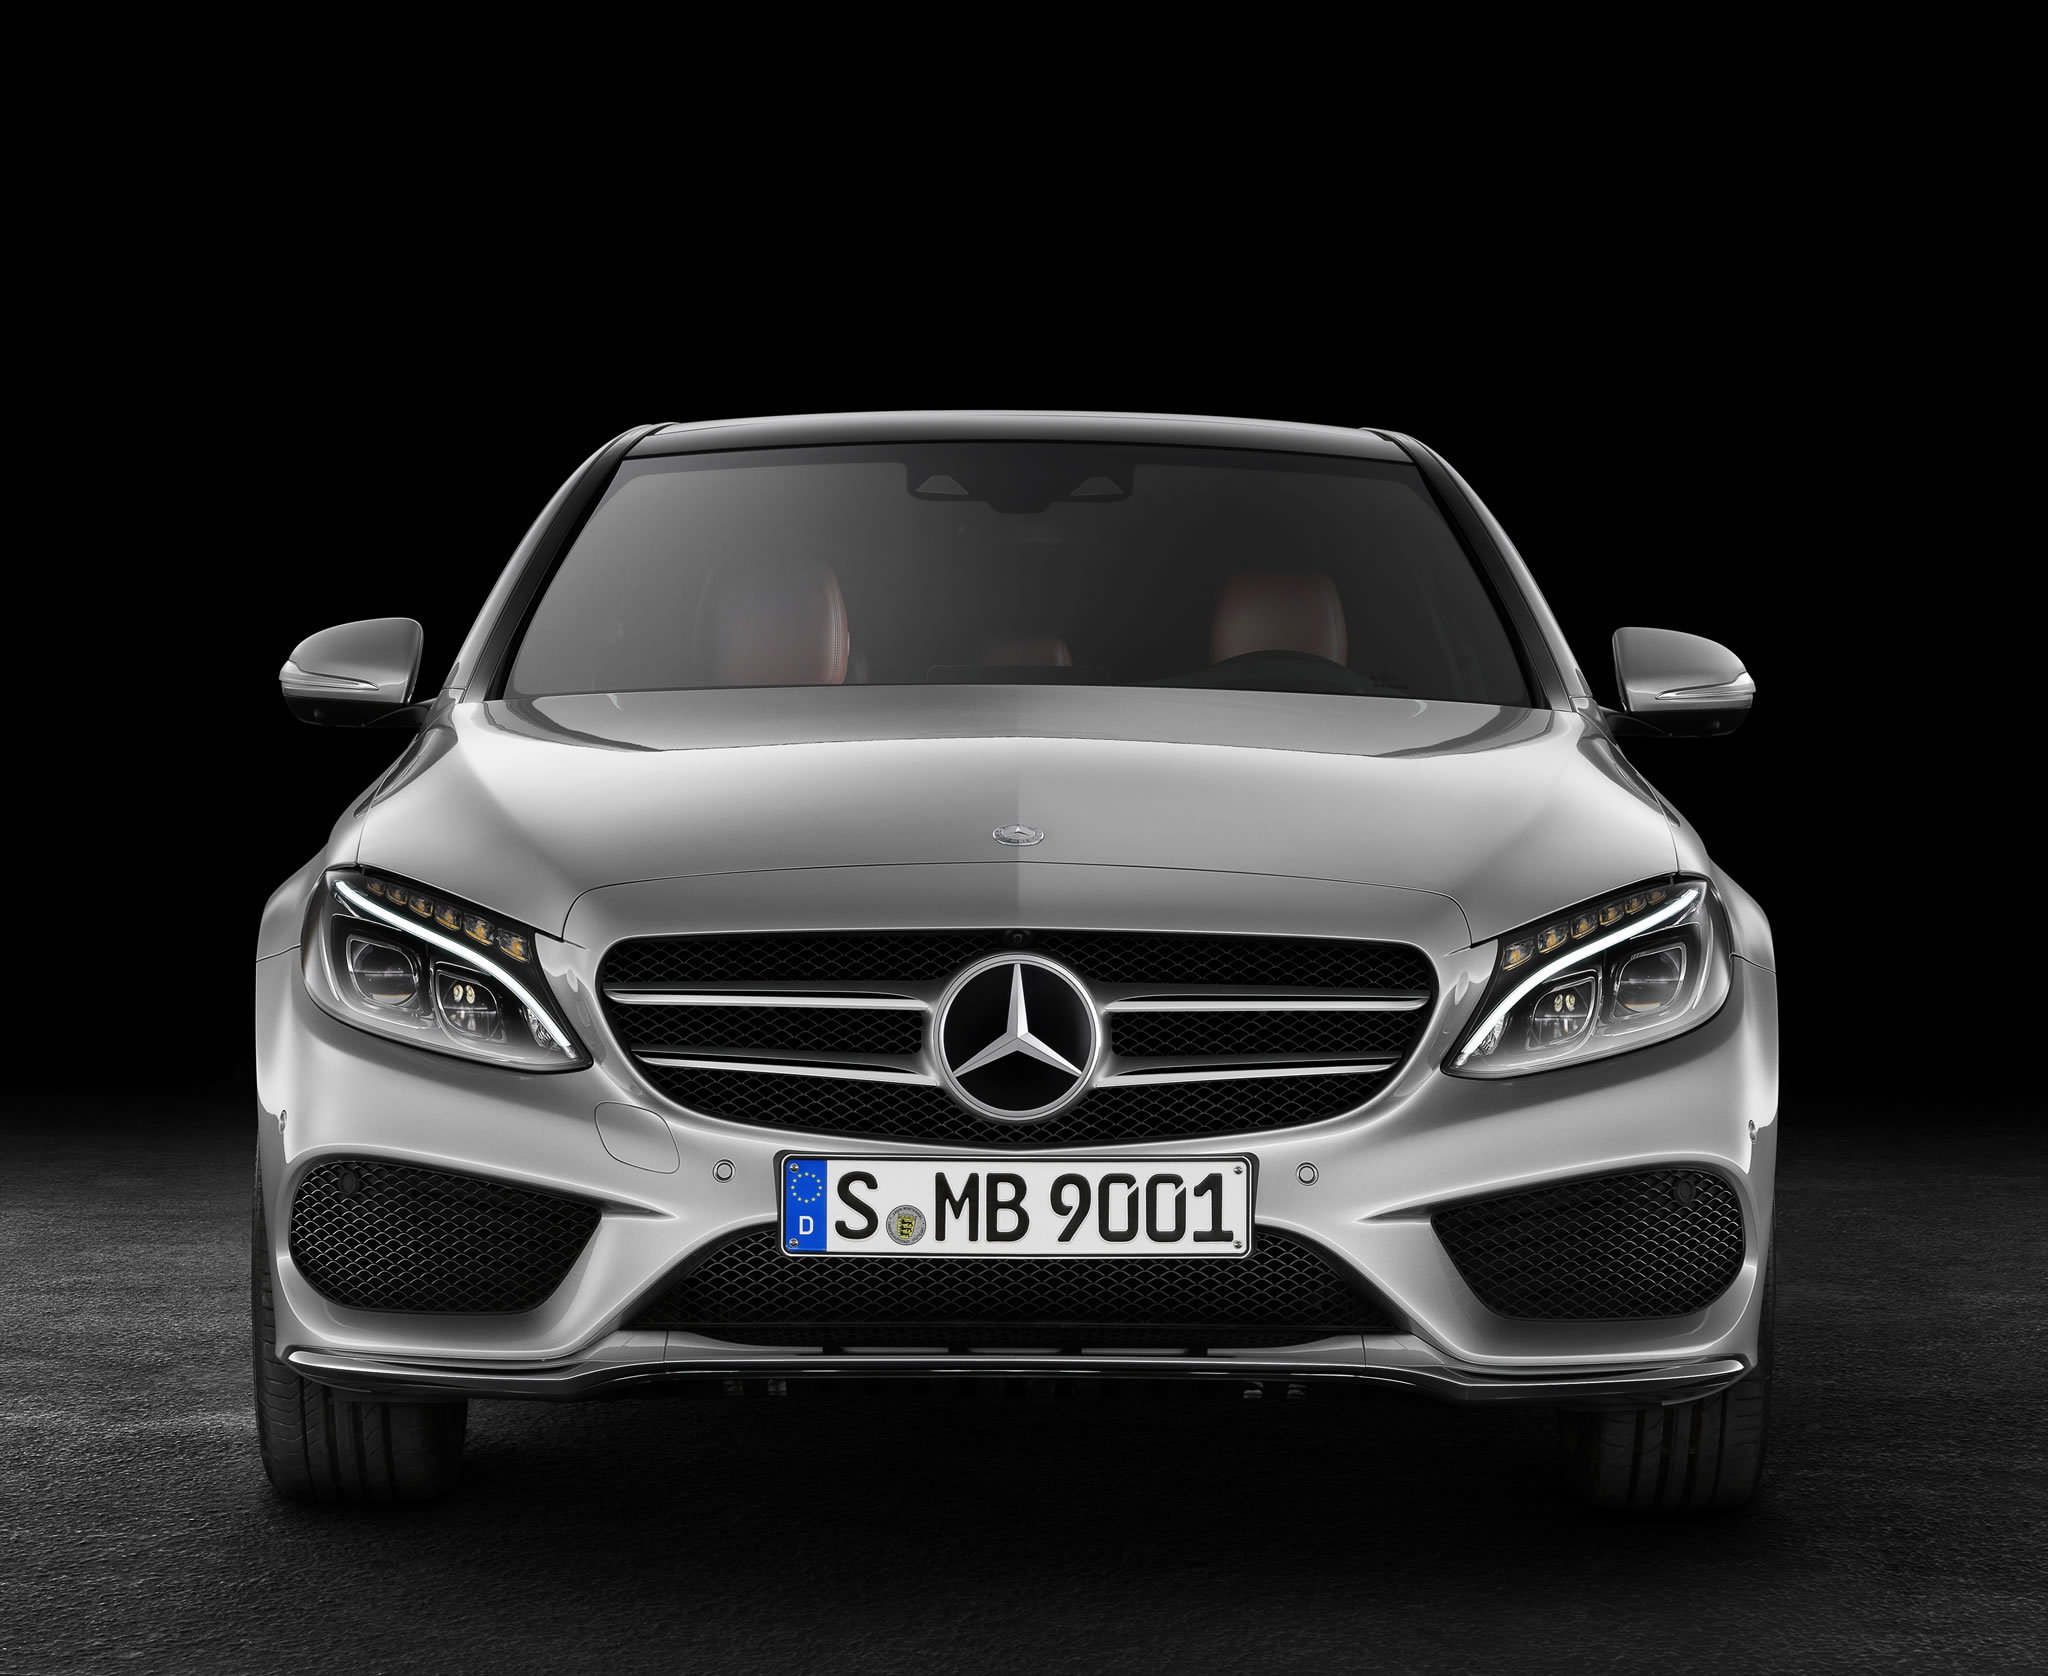 2015 mercedes benz c class front photo iridium silver for Mercedes benz c class colours